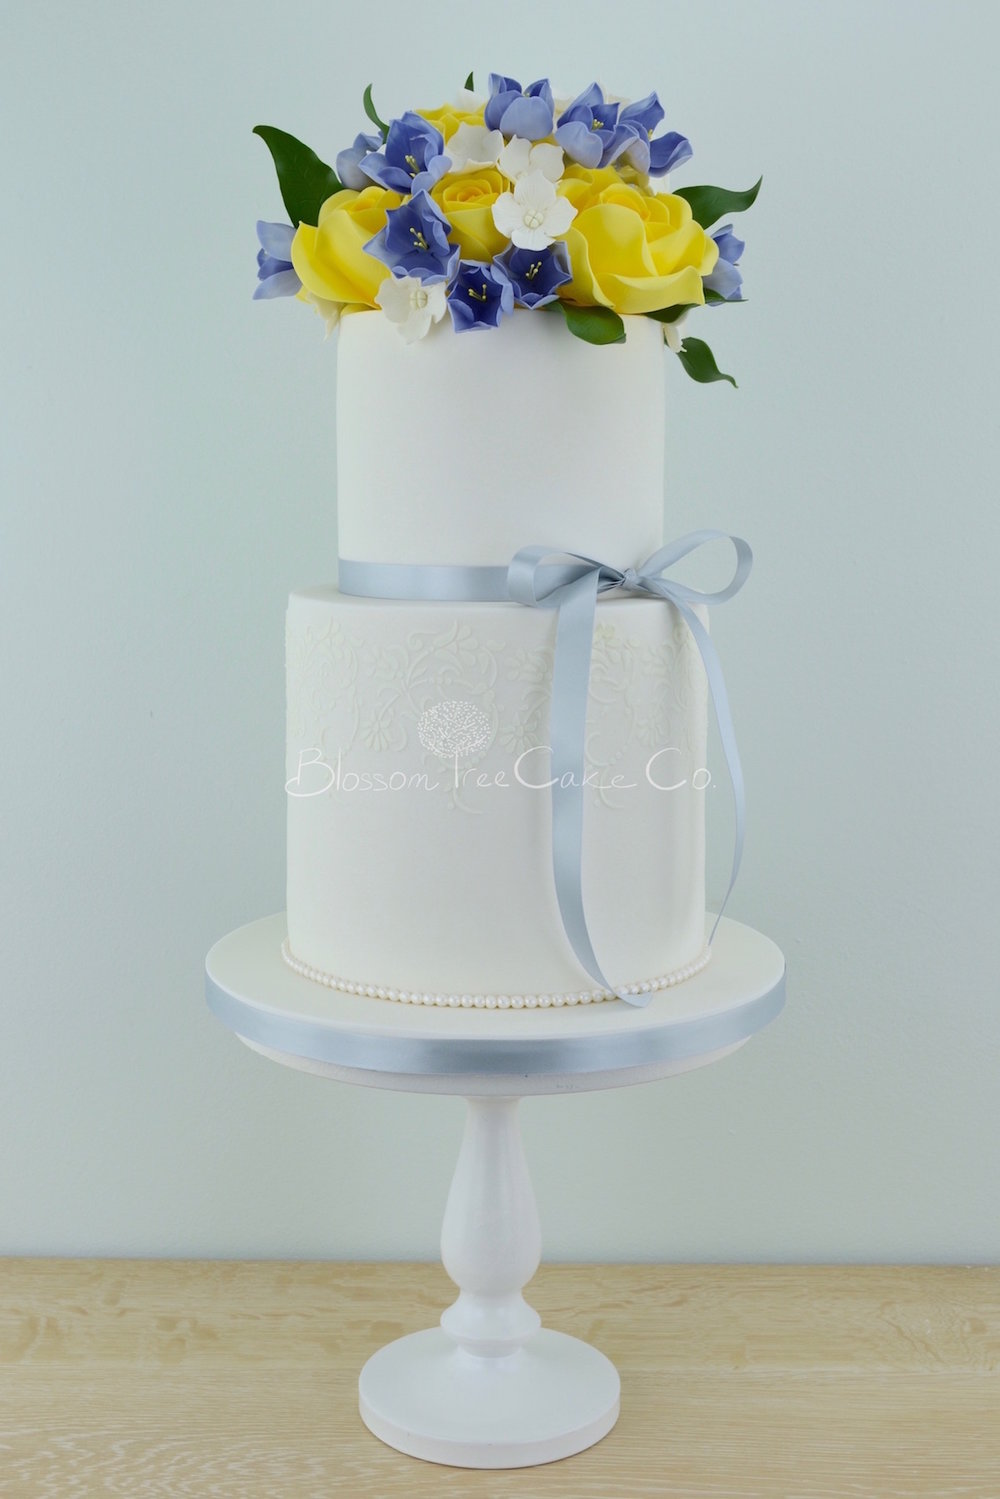 Friesia Roses wedding cake by Blossom Tree Cake Company Harrogate North Yorkshire